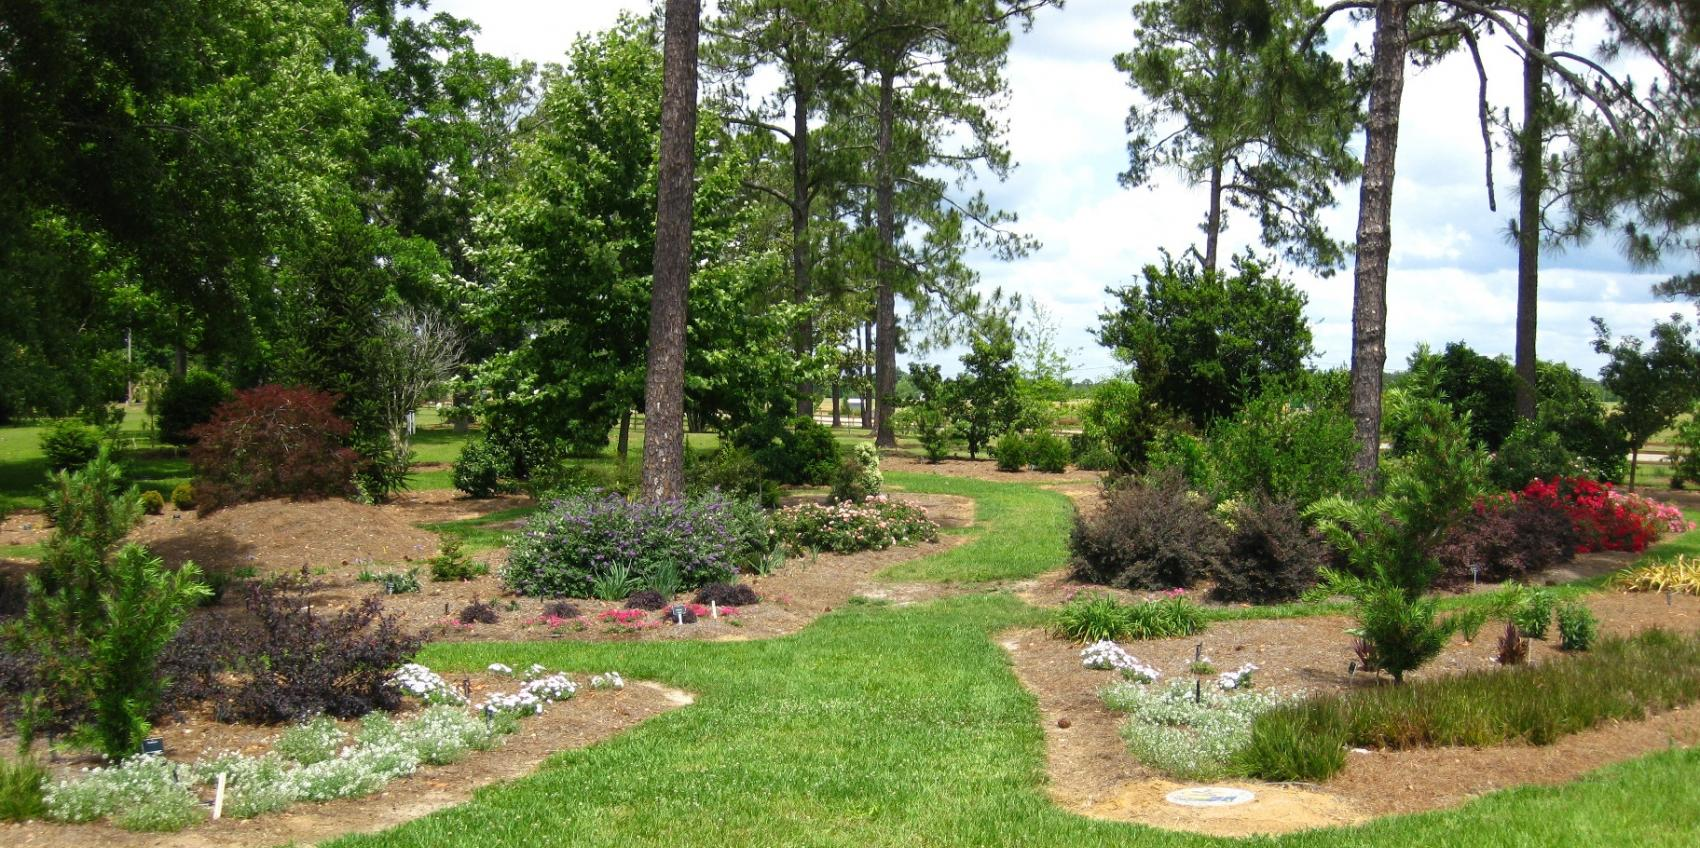 Gardens of the big bend at university of florida for American garden association